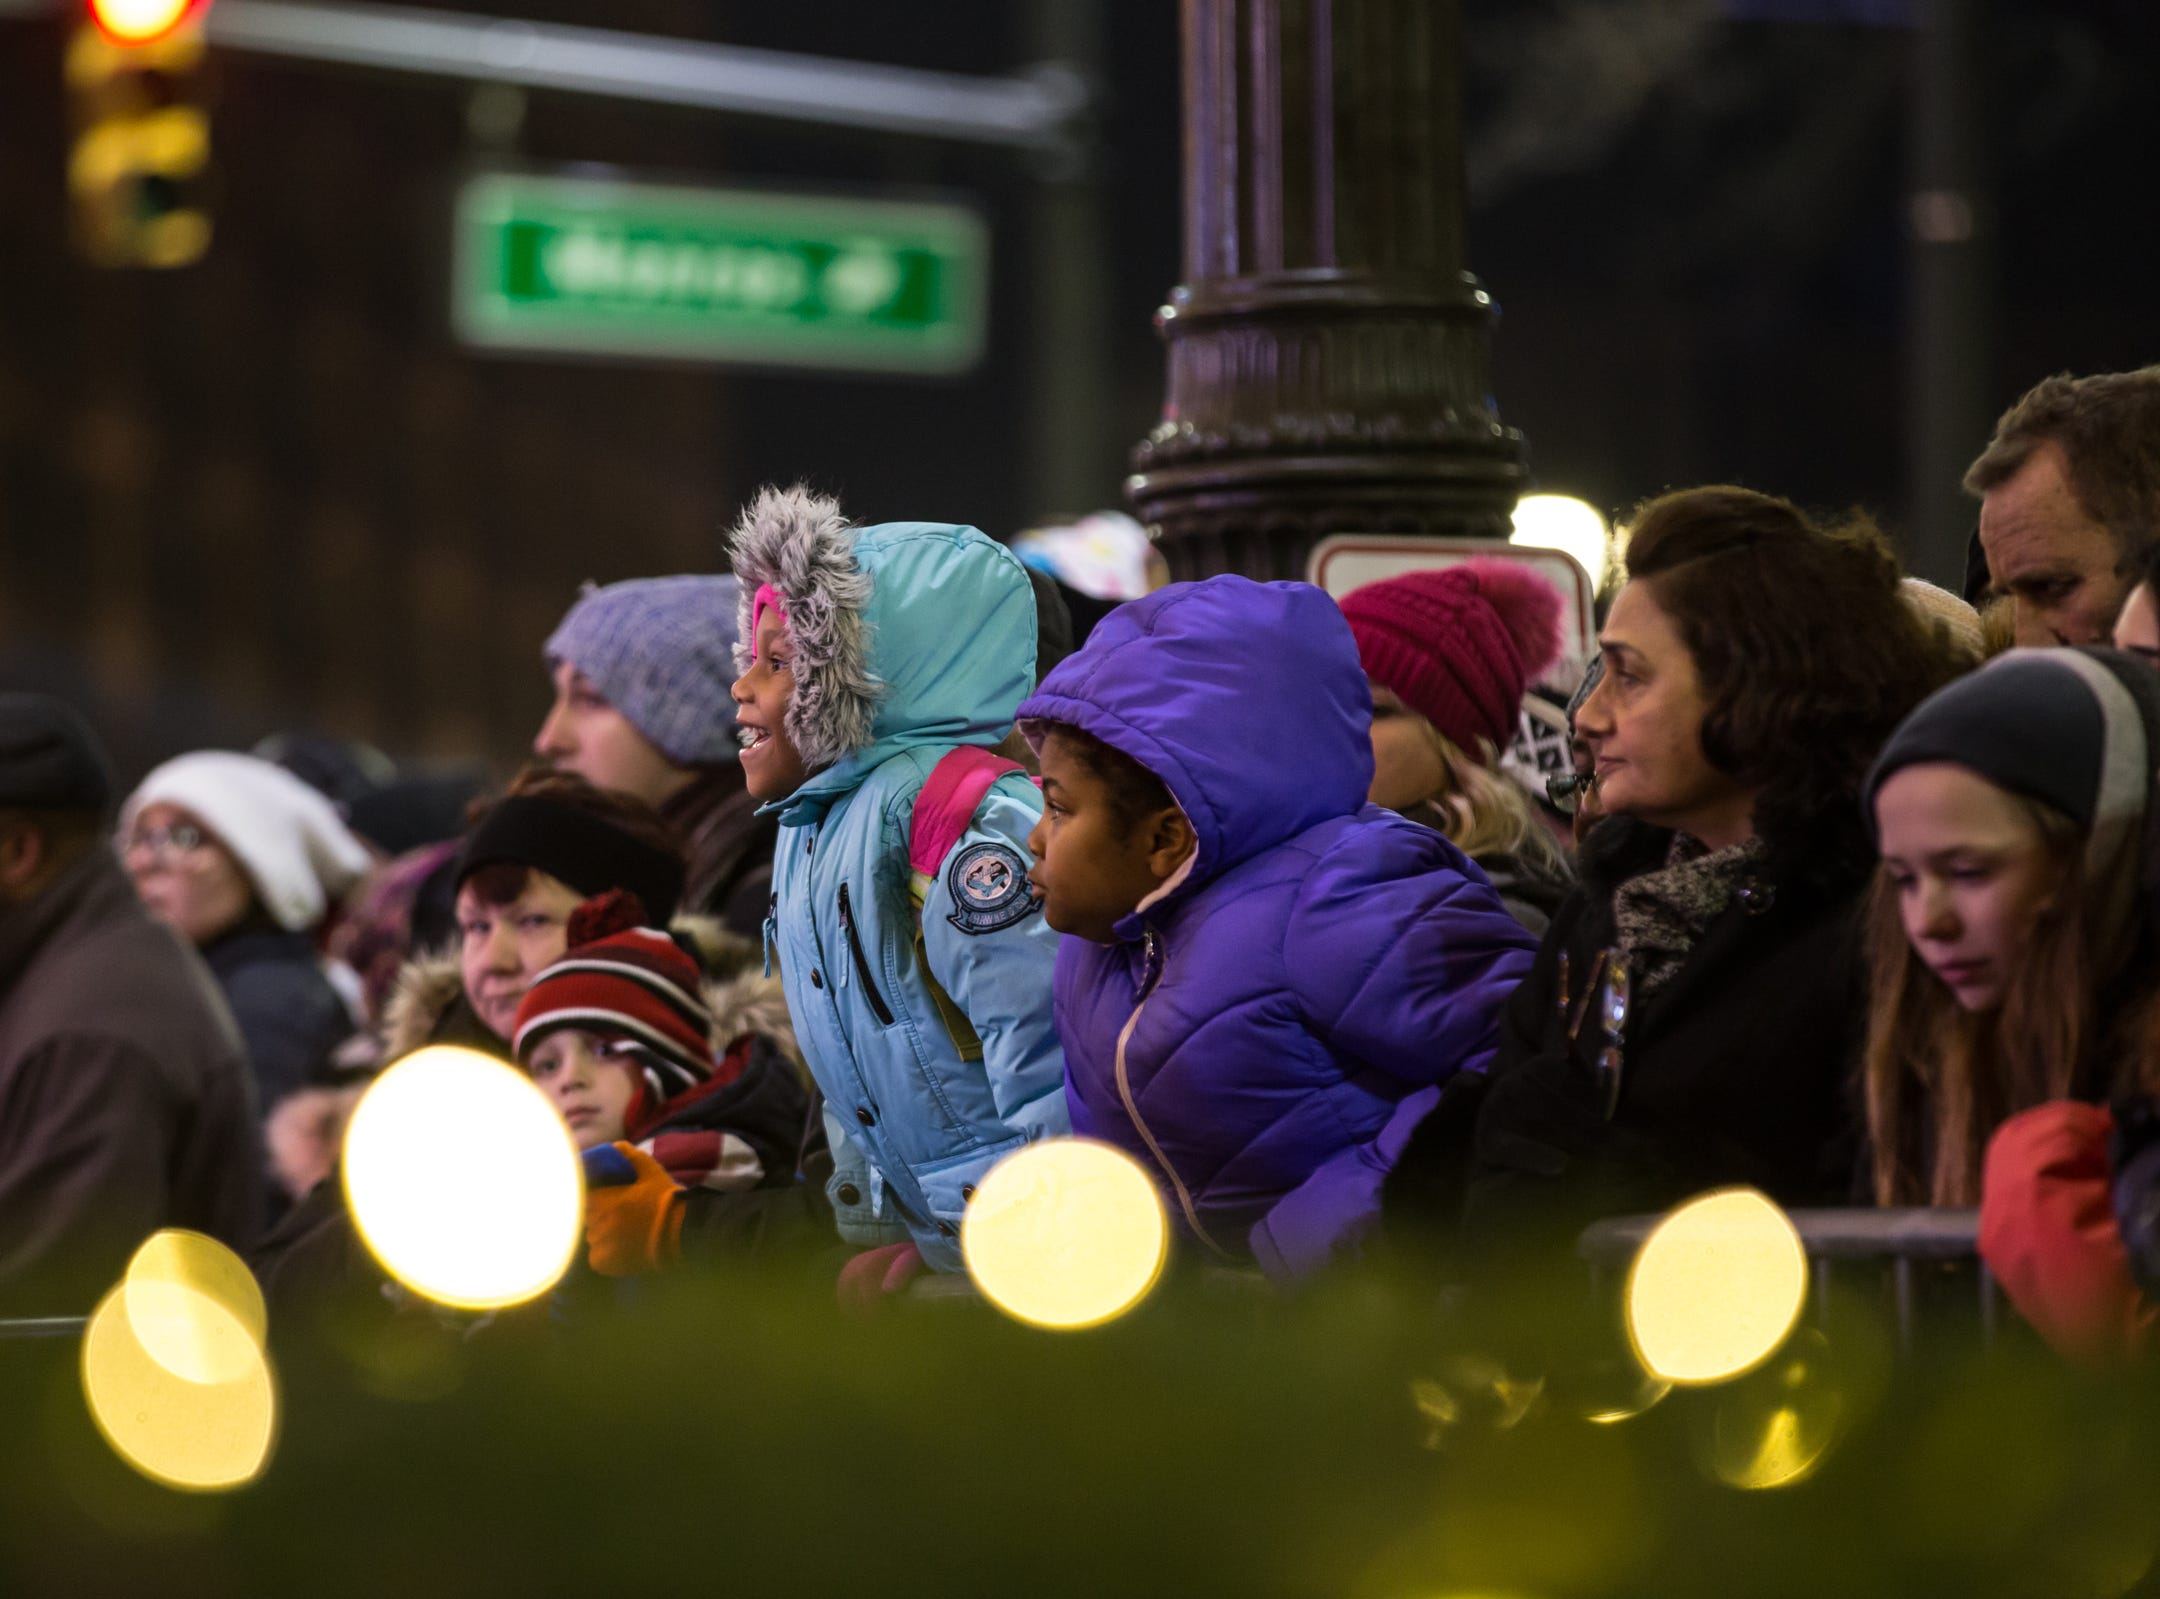 People line along the gates to watch a performance during the annual tree lighting event at Campus Martius Park in downtown Detroit on Friday, November 16, 2018.